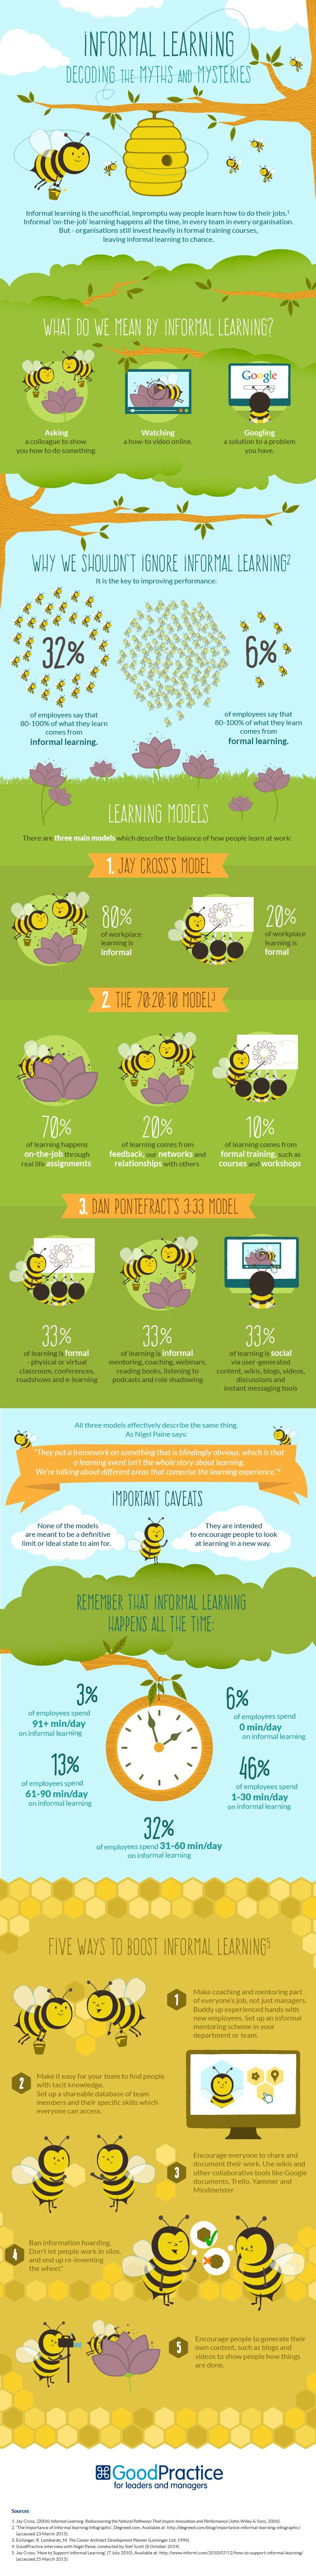 Myths and Mysteries of Informal Learning Infographic - e-Learning Infographics